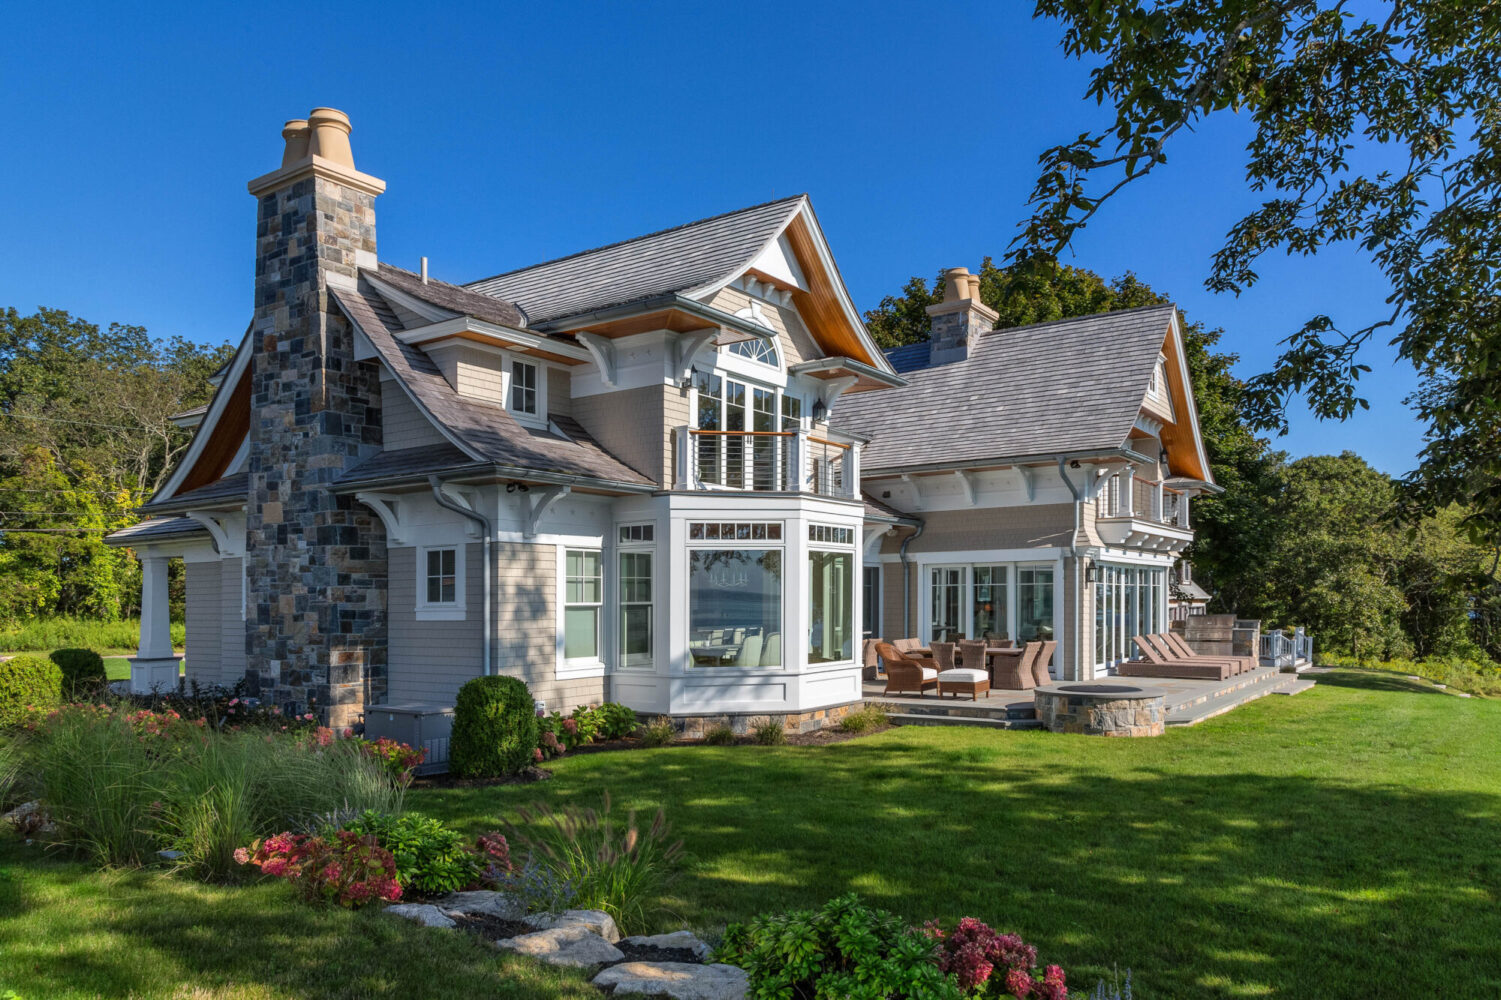 New, traditional, small home, house in Stonington, Connecticut.